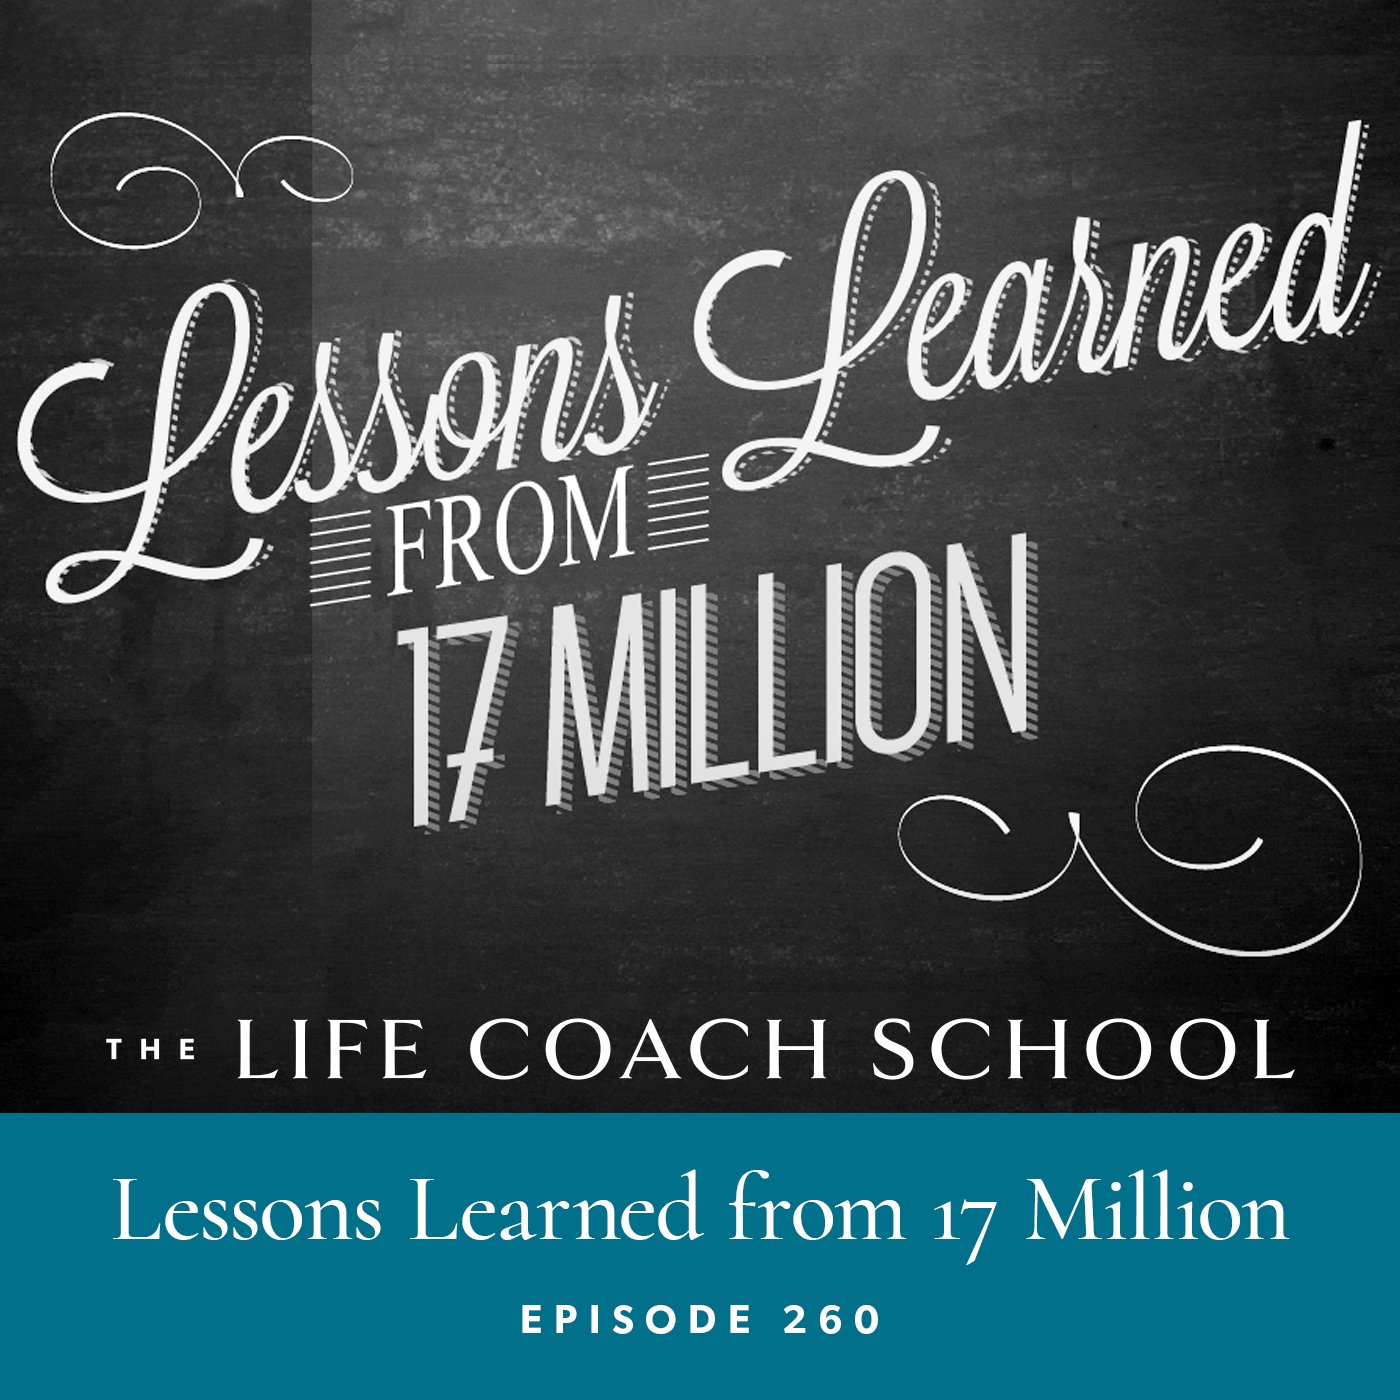 The Life Coach School Podcast with Brooke Castillo | Episode 260 | Lessons Learned from 17 Million